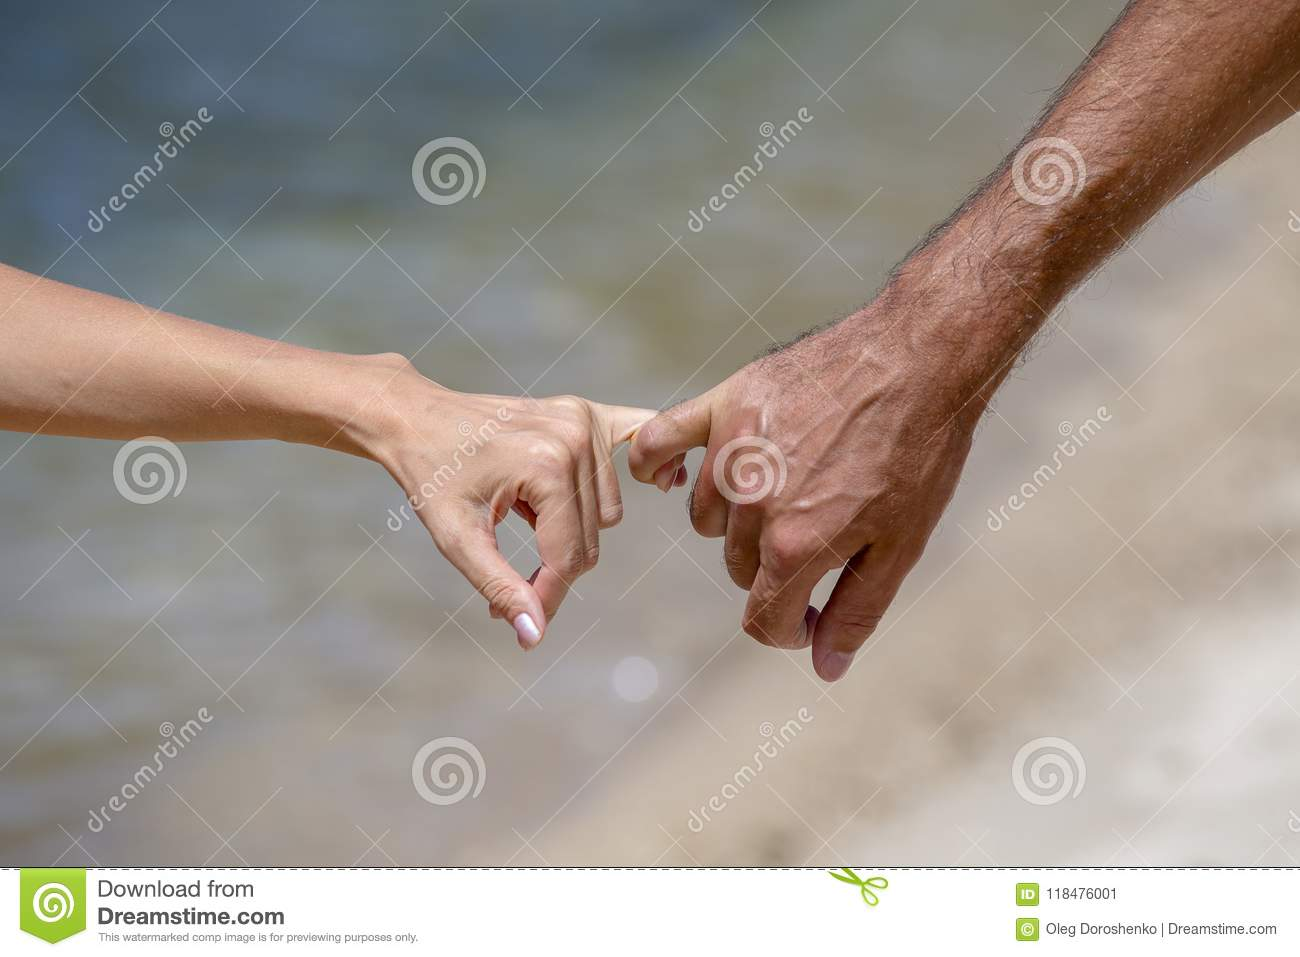 Summer couple holding hands on beach. Romantic young couple enjoying sun, sunshine, romance and love by the sea.